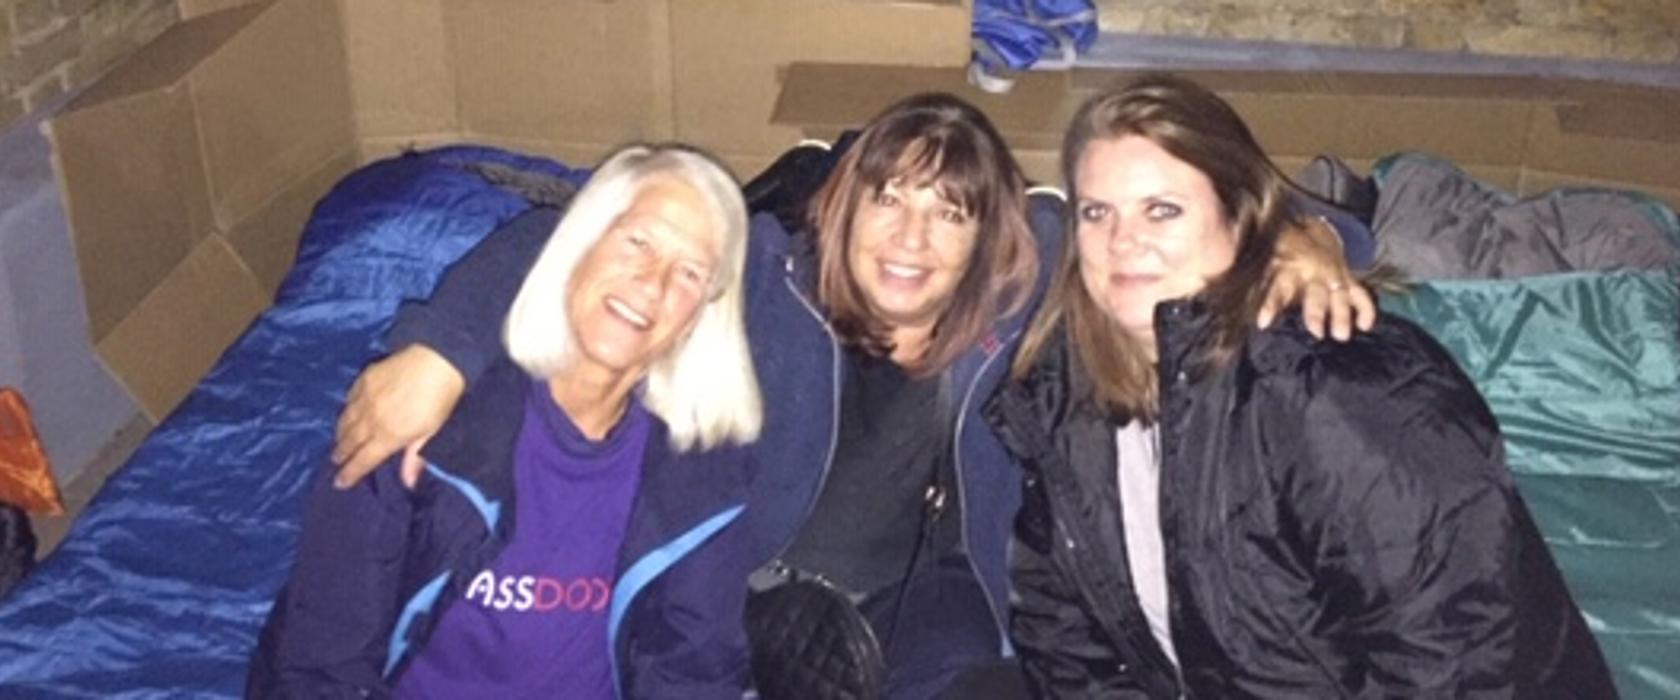 Dee Elias's Sleep Out (or in) fundraising page